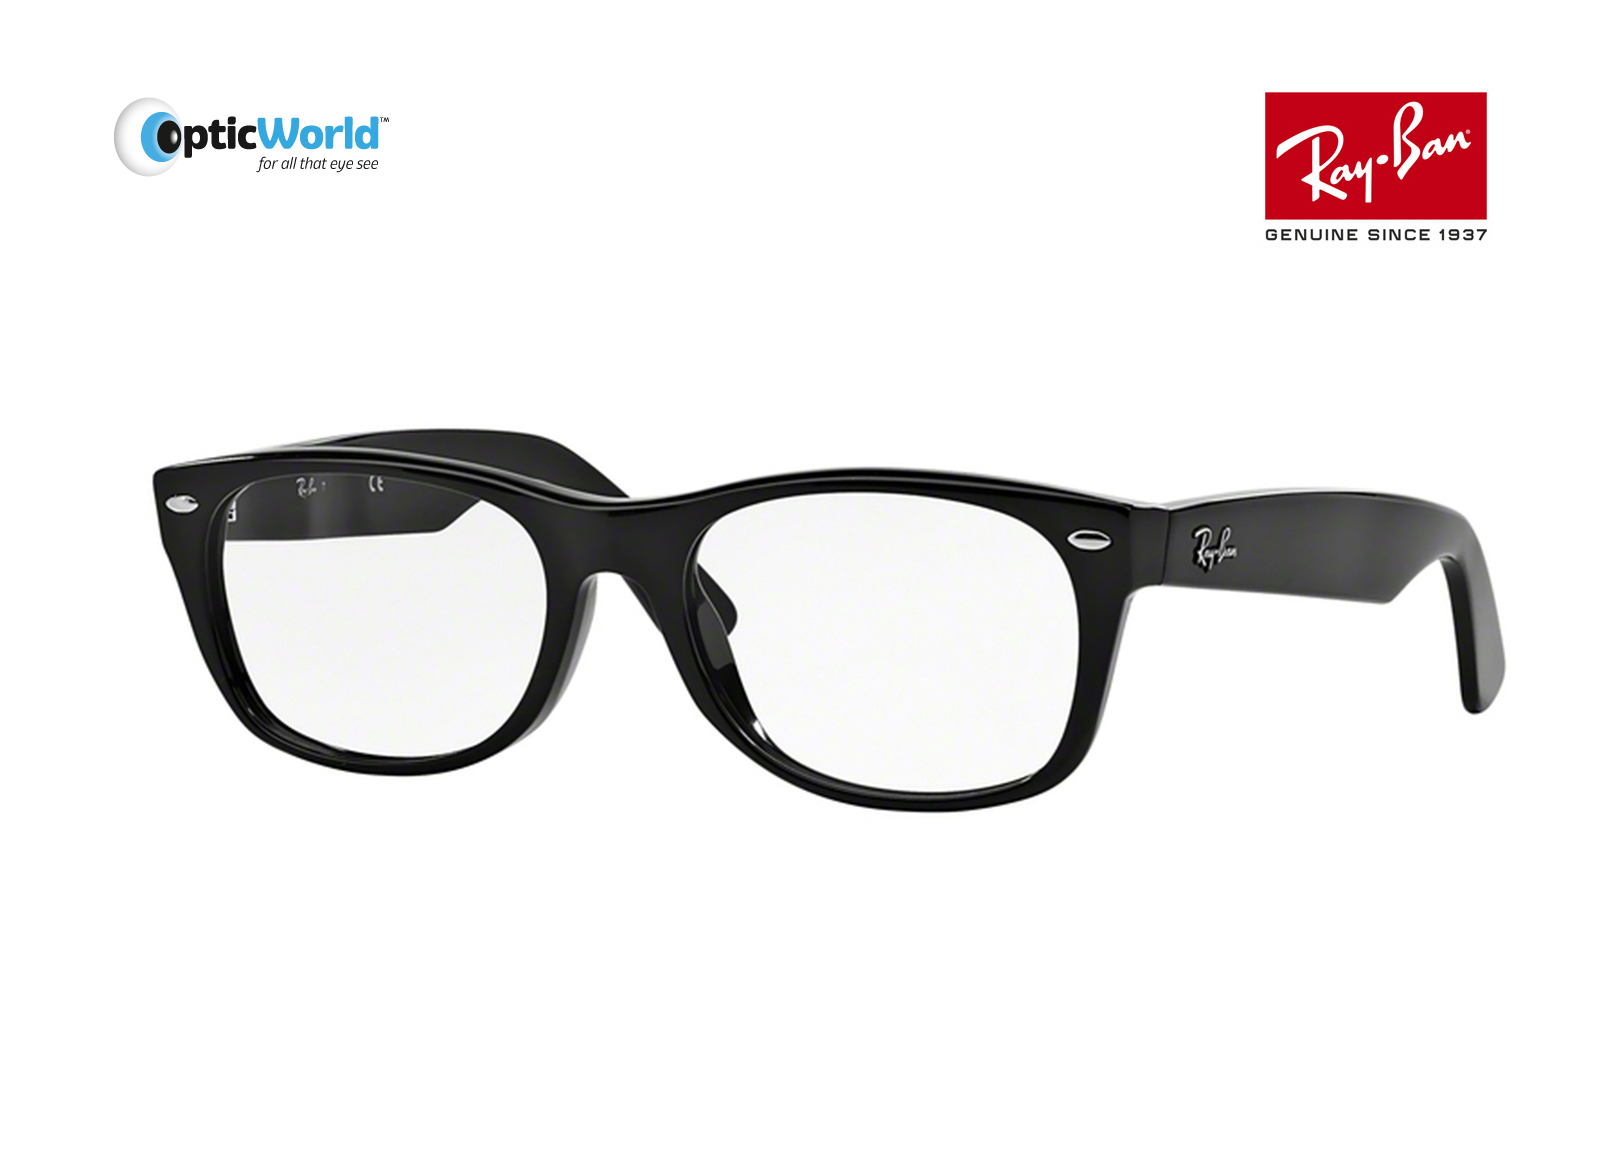 Rx5184 Ray Ban Wayfarer Optical Frames Glasses Eyeglasses 2015 ...